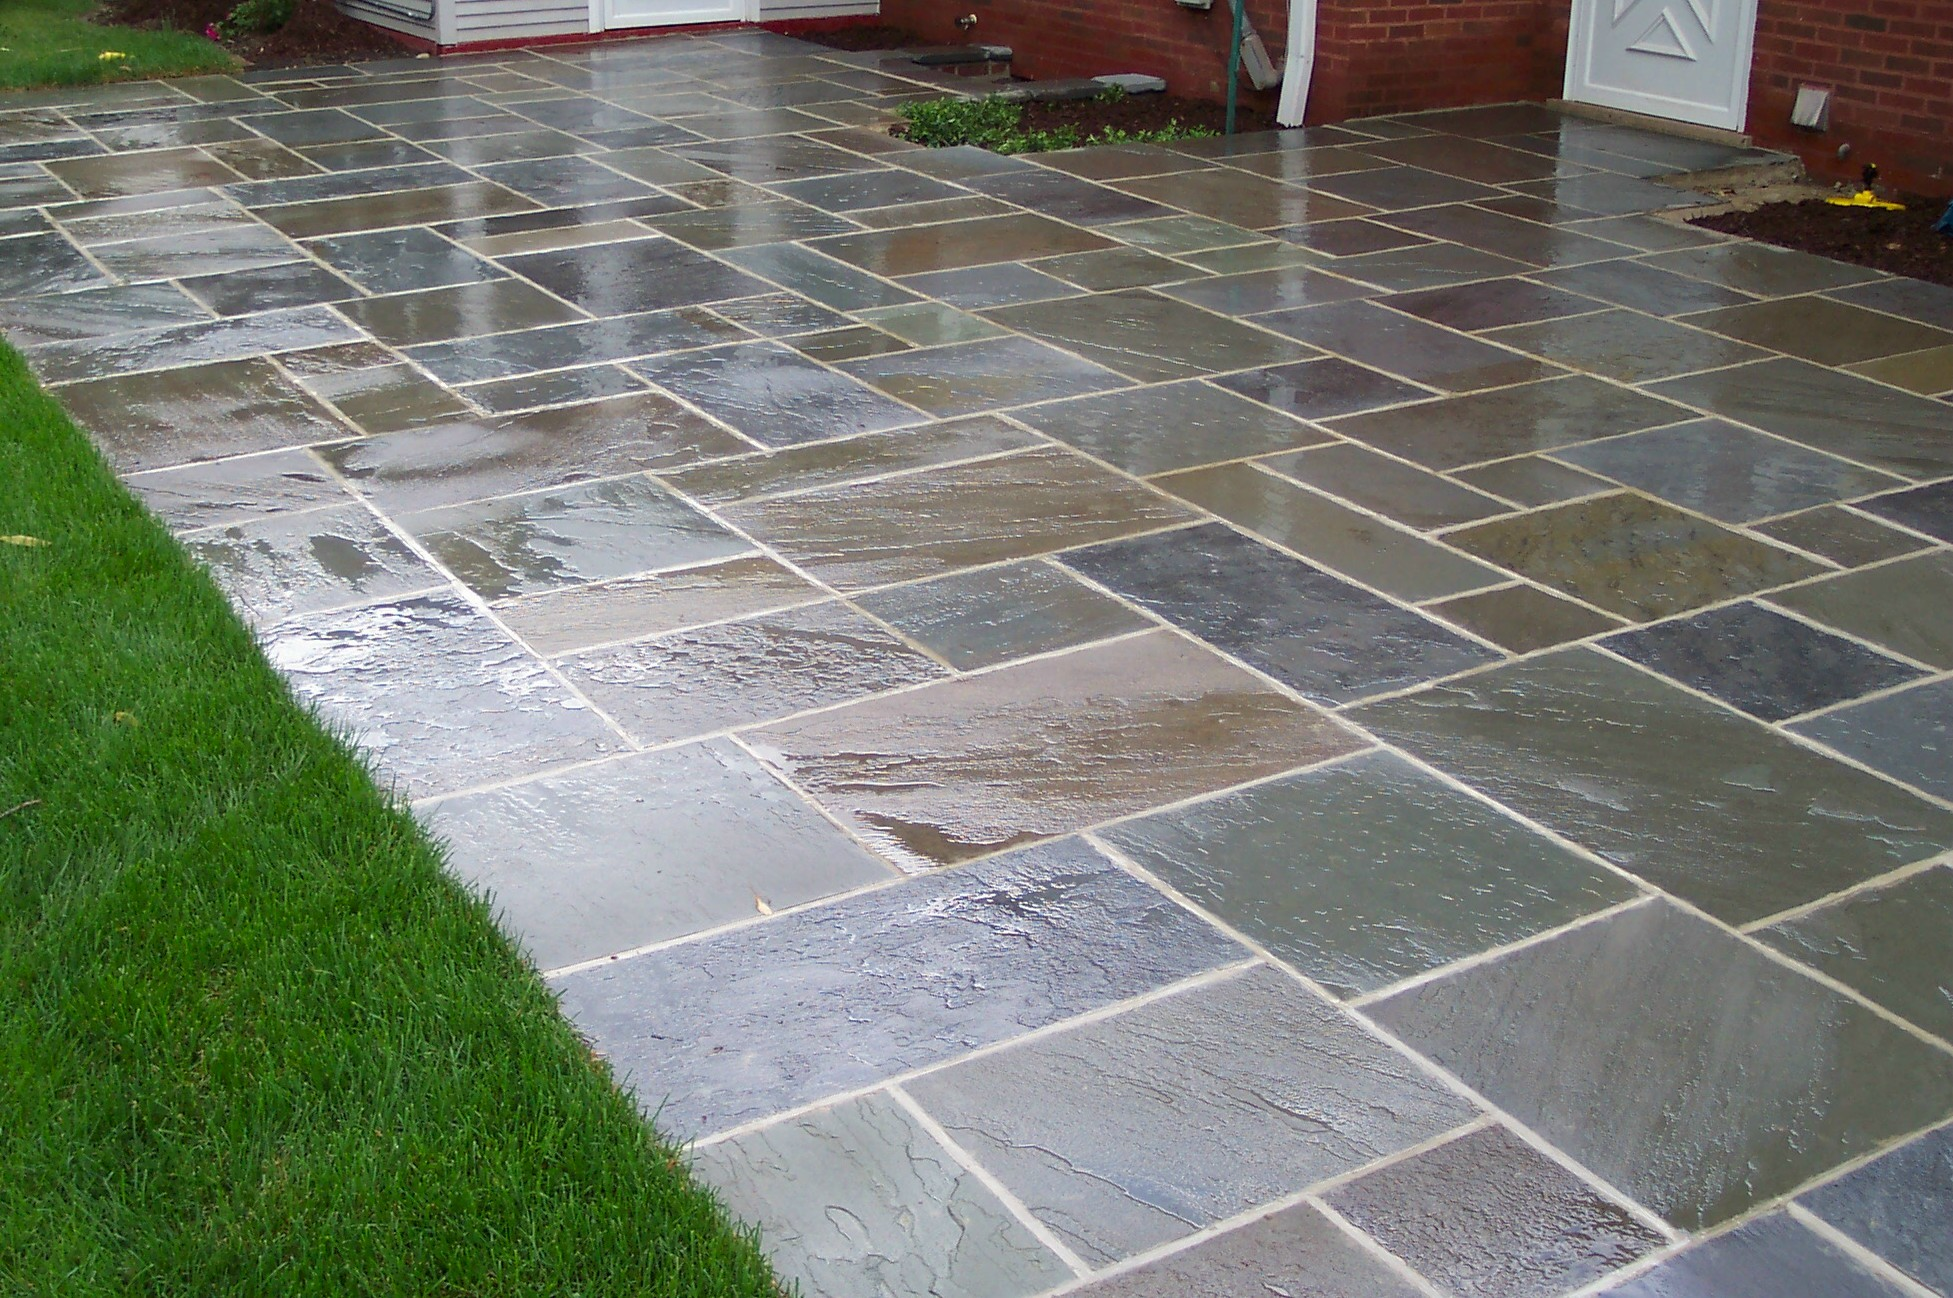 Backyard Paver Designs paver stone patio fresh at flagstone pavers design for outdoor flooring ideas flagstone Backyard Designs With Pavers